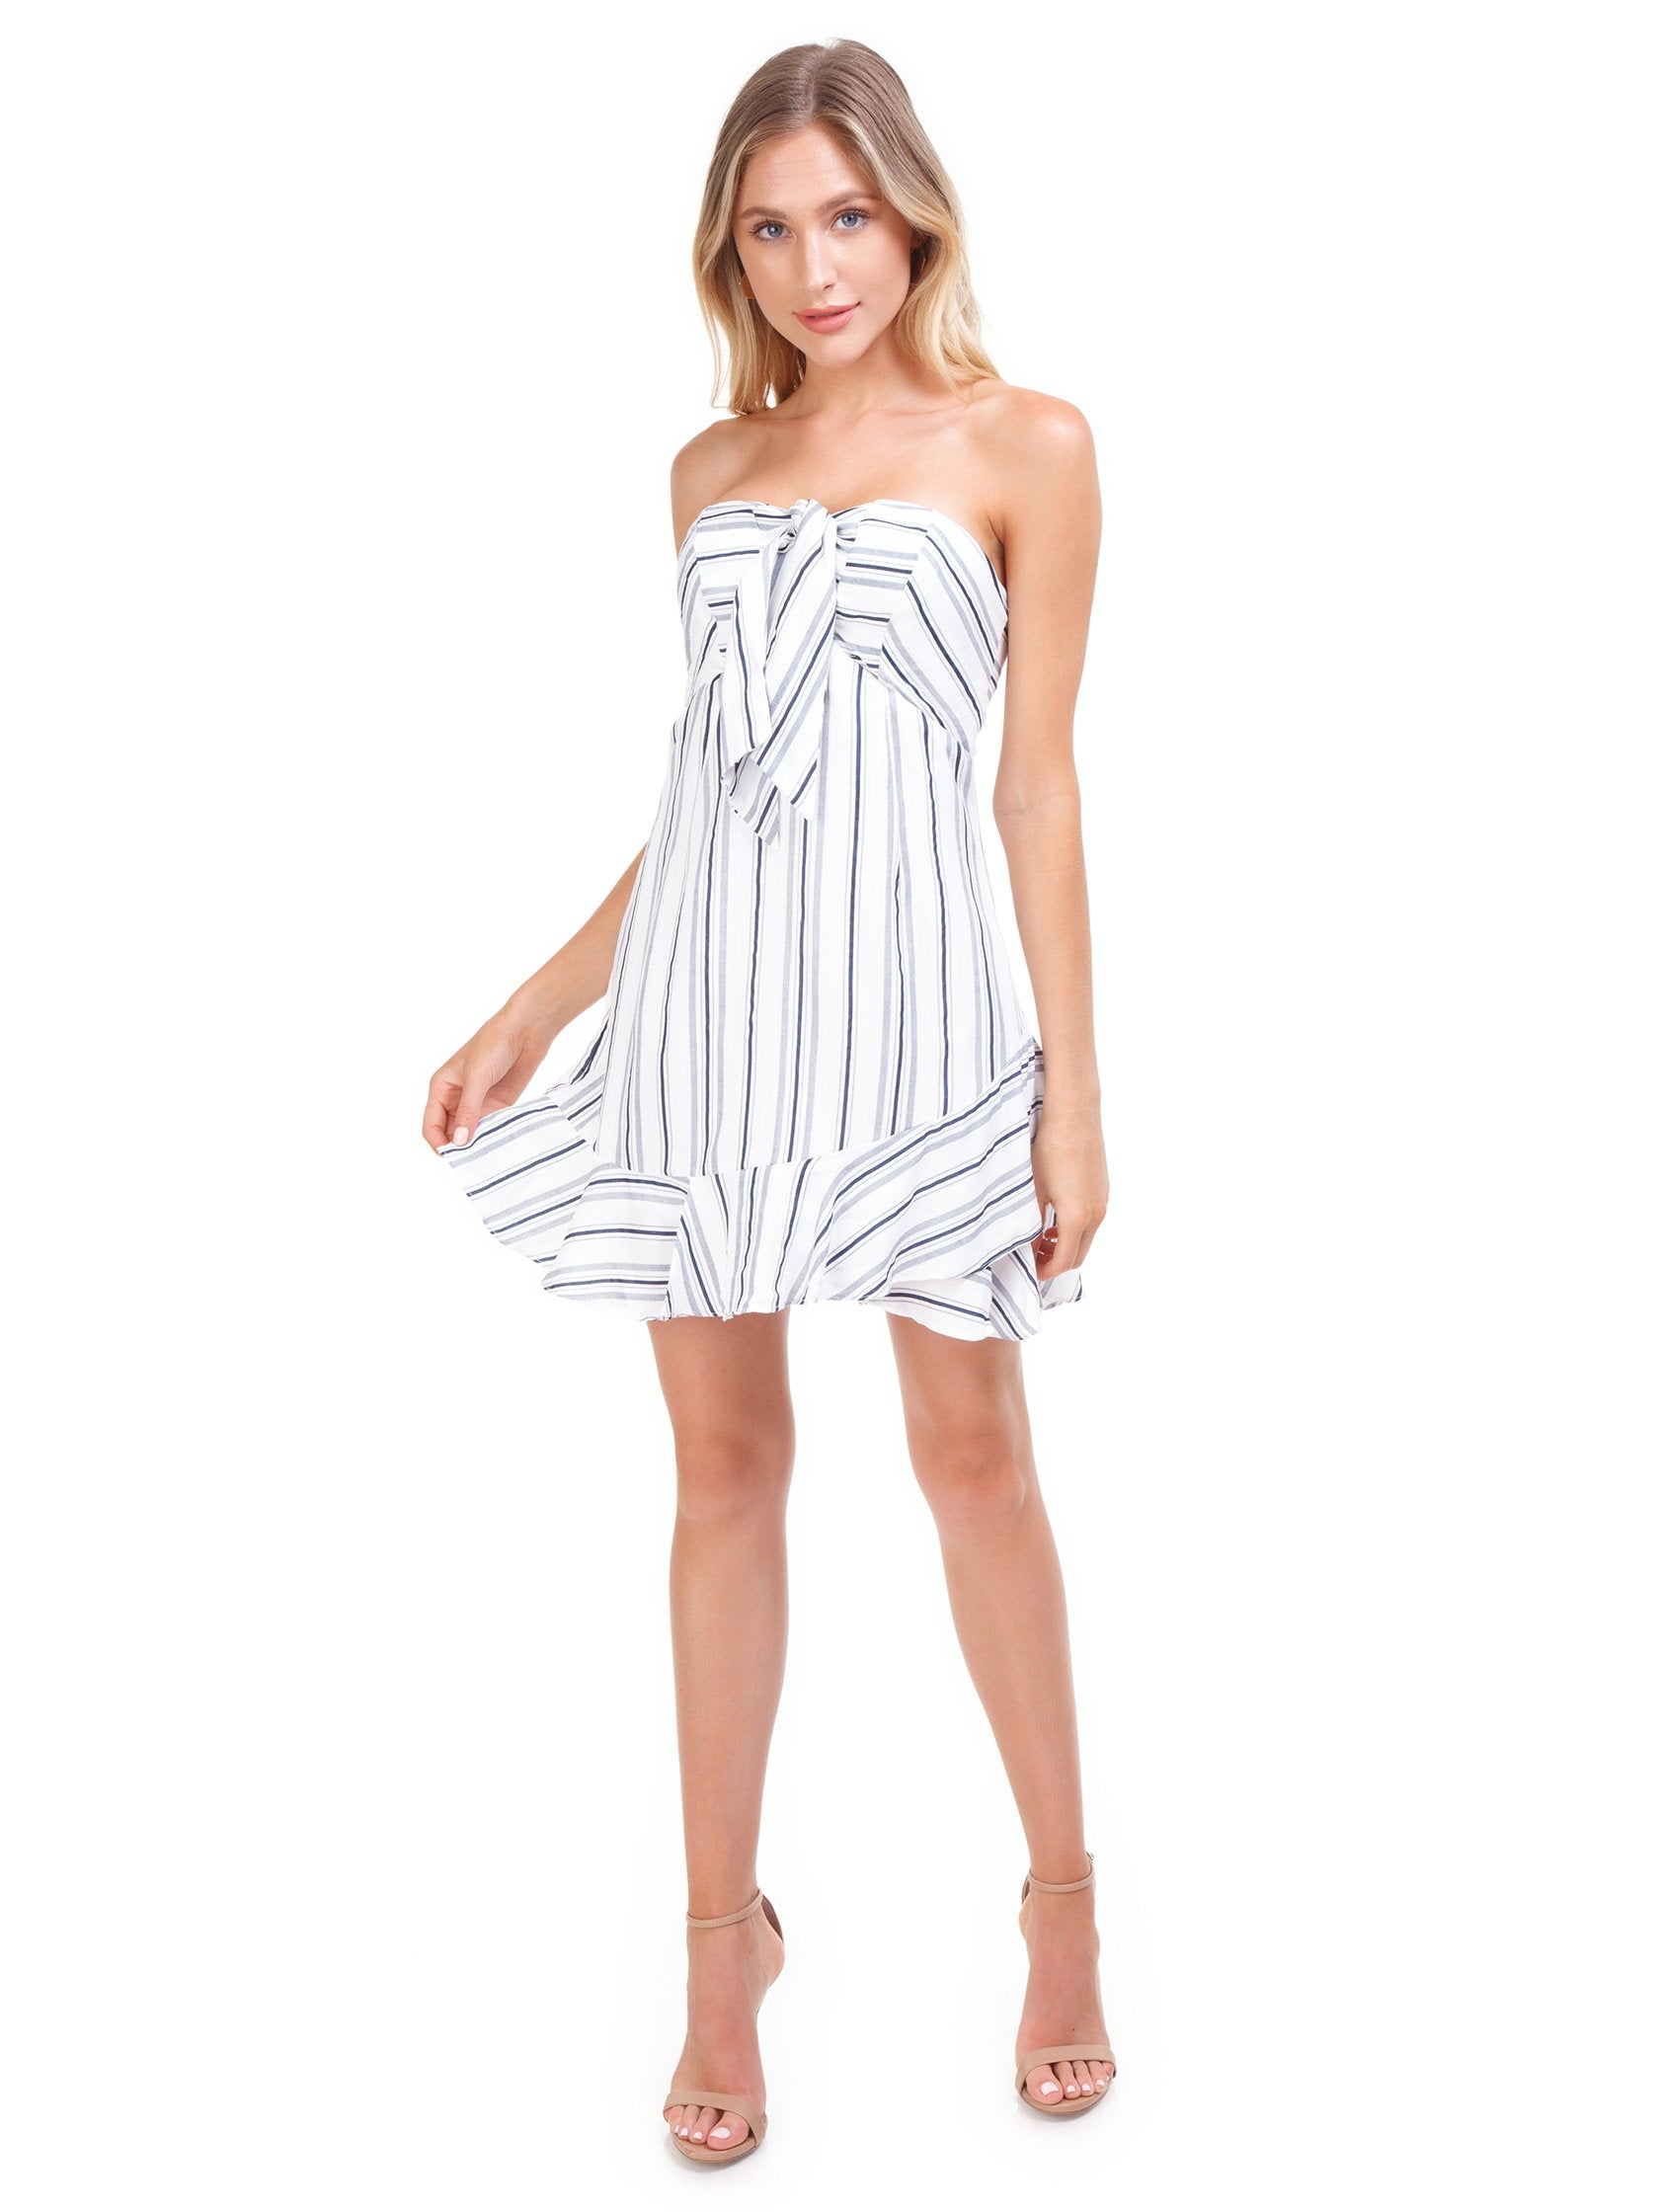 Girl outfit in a dress rental from Cotton Candy called Stripe Mini Dress